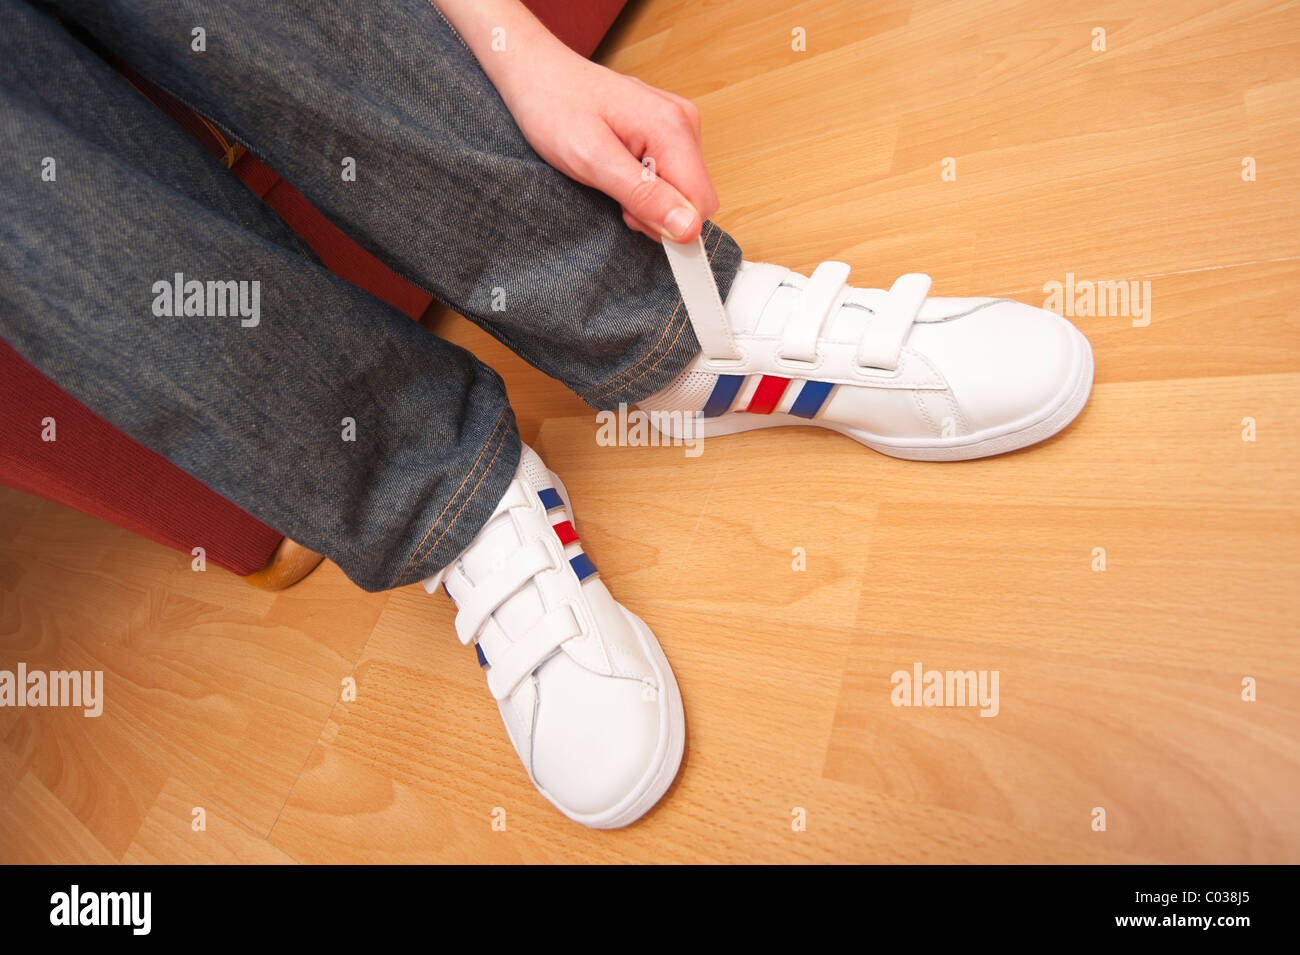 A MODEL RELEASED picture of an eleven year old boy fastening his velcro trainers in the Uk - Stock Image